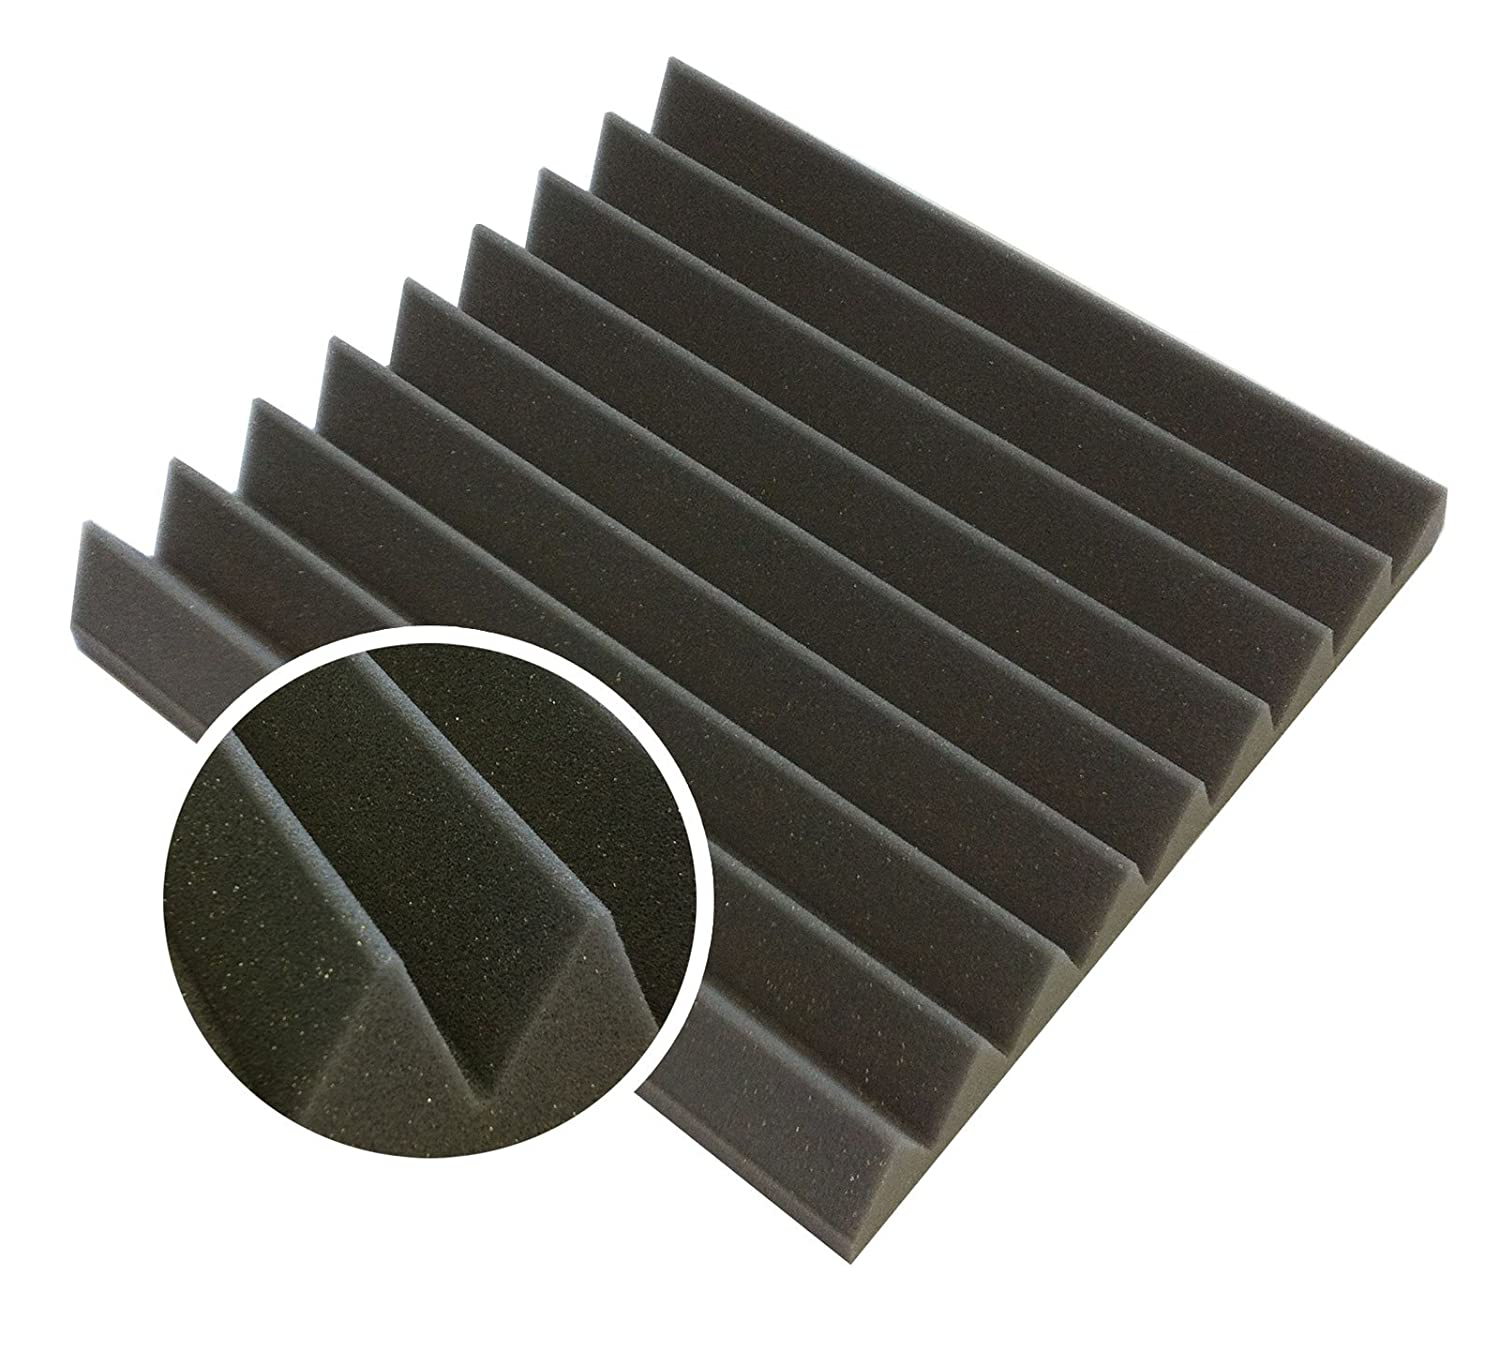 Lovely sound Blockers for Walls